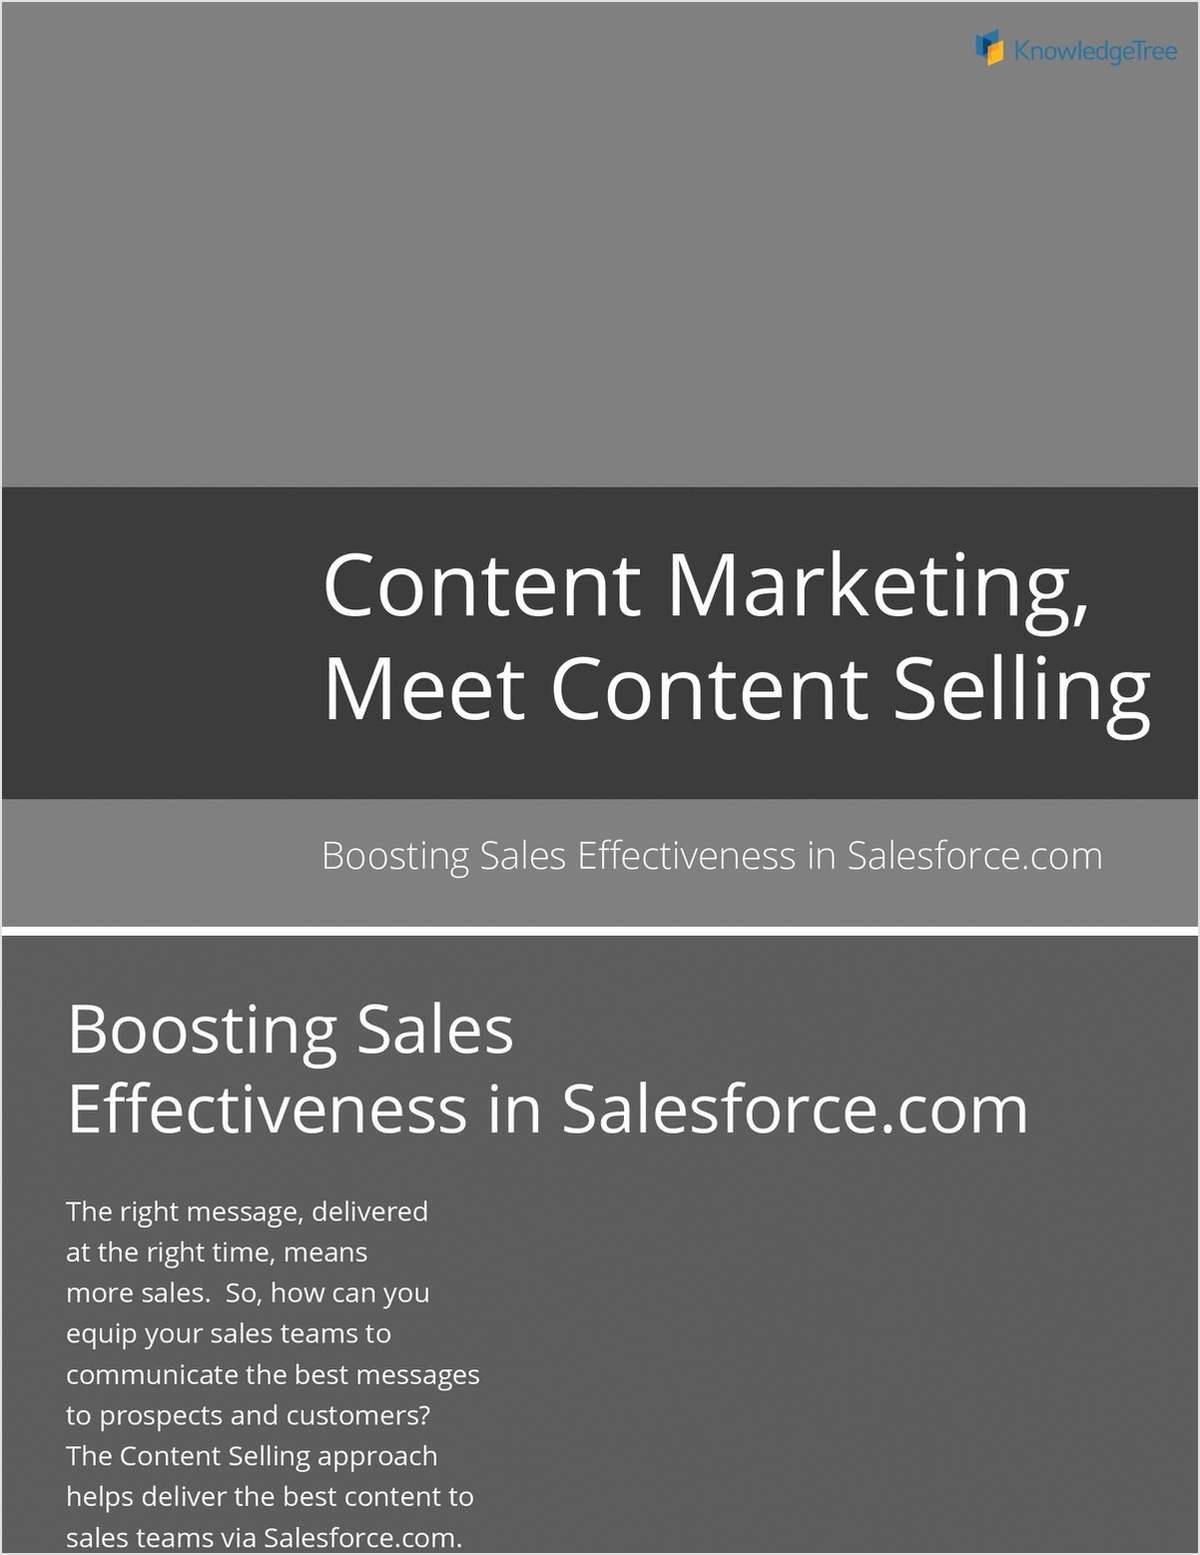 Content Marketing Meet Content Selling